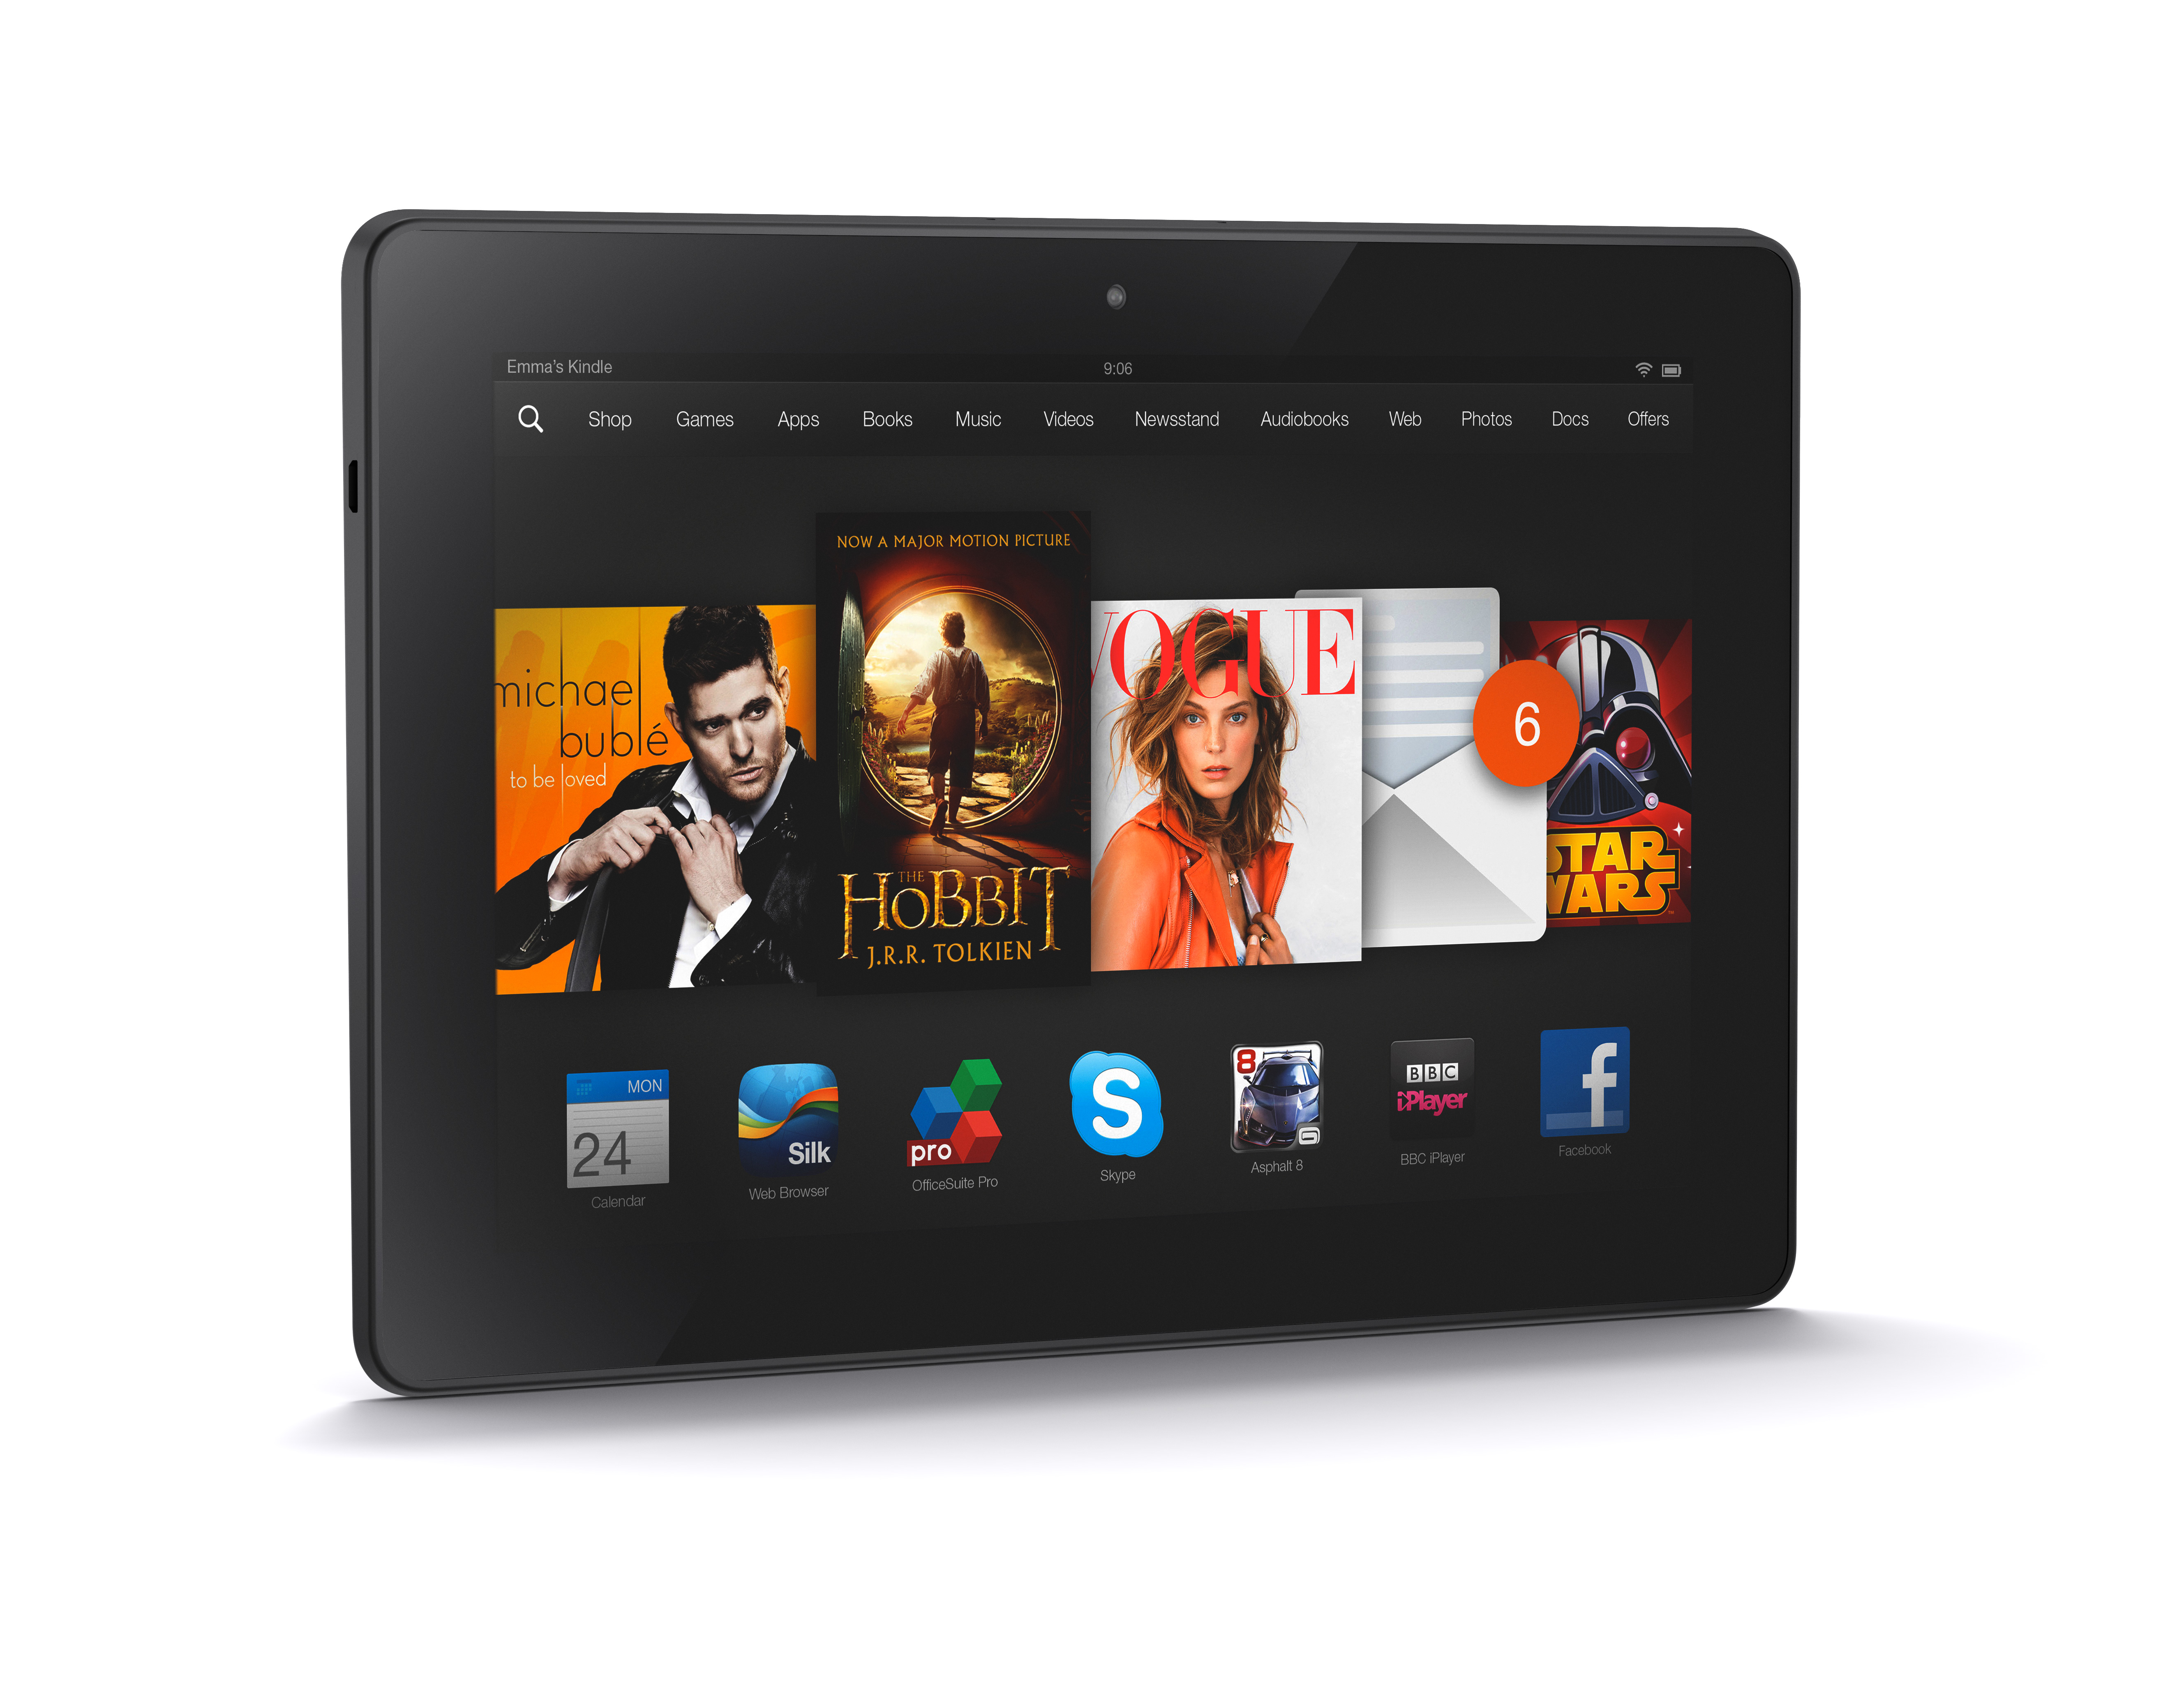 Amazon Fire HDX 8.9 Drivers Download Free